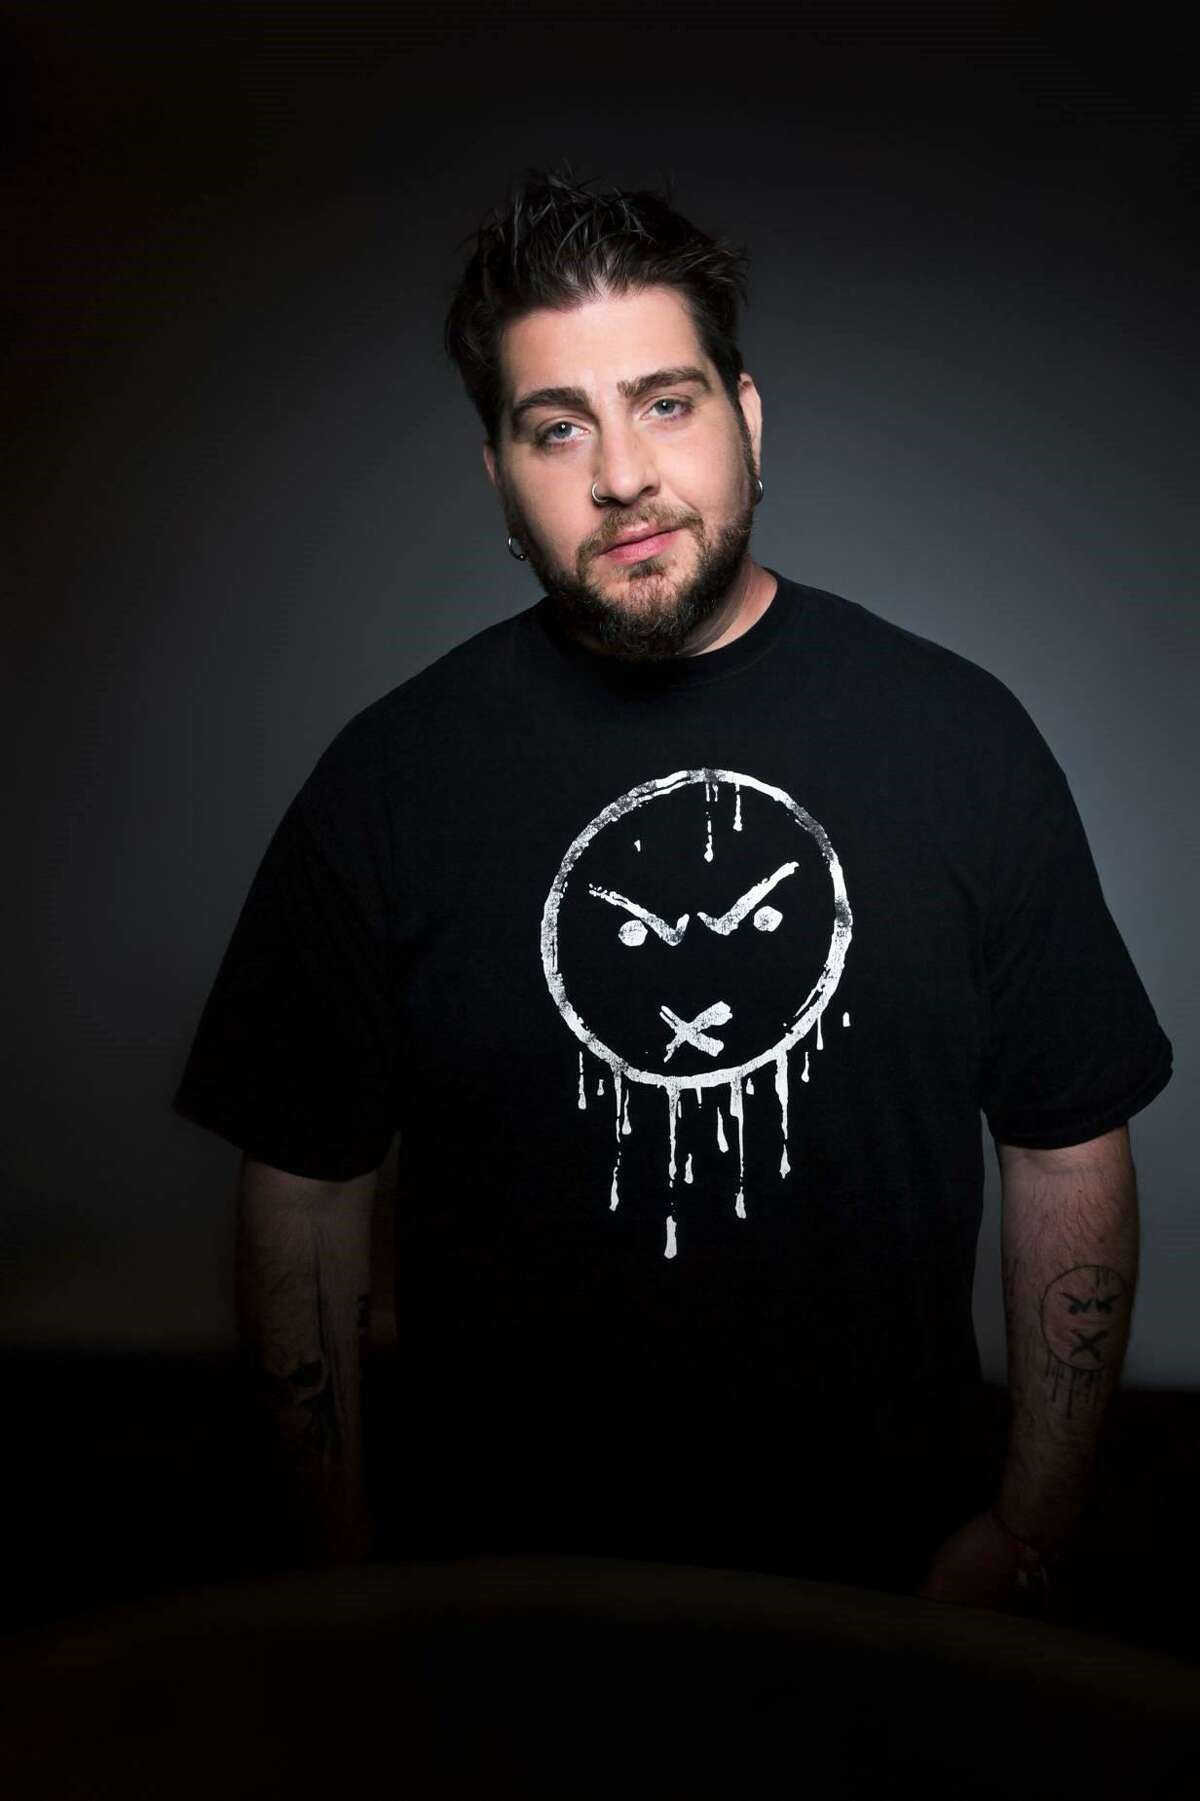 Big Jay Oakerson performs at Mohegan Sun's comedy club on Friday and Saturday. Find out more.